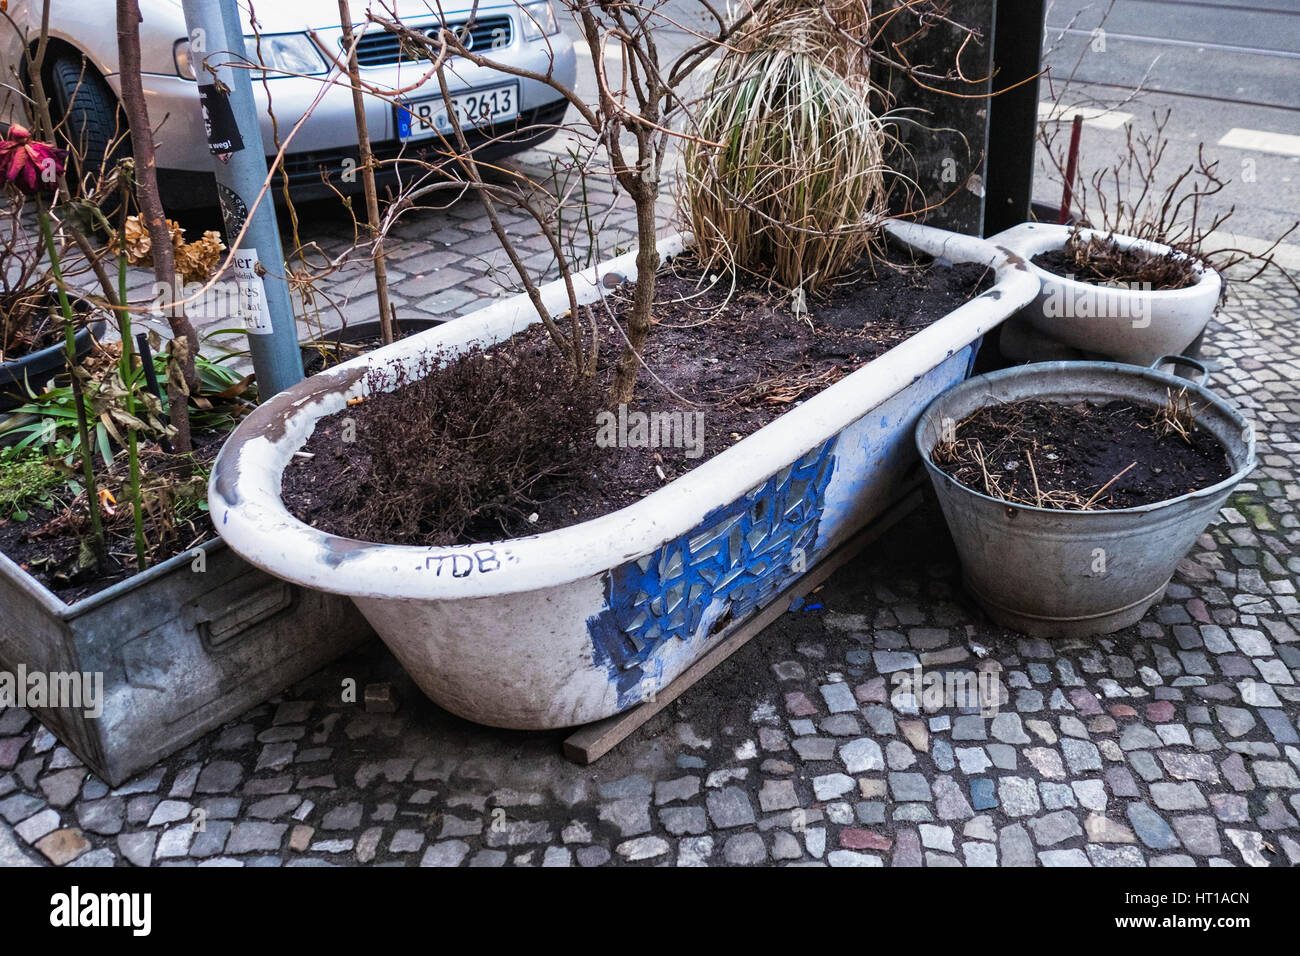 Berlin, Prenzlauer Berg. Unusual plant containers on urban pavement, bath,tin tub and toilet Stock Photo